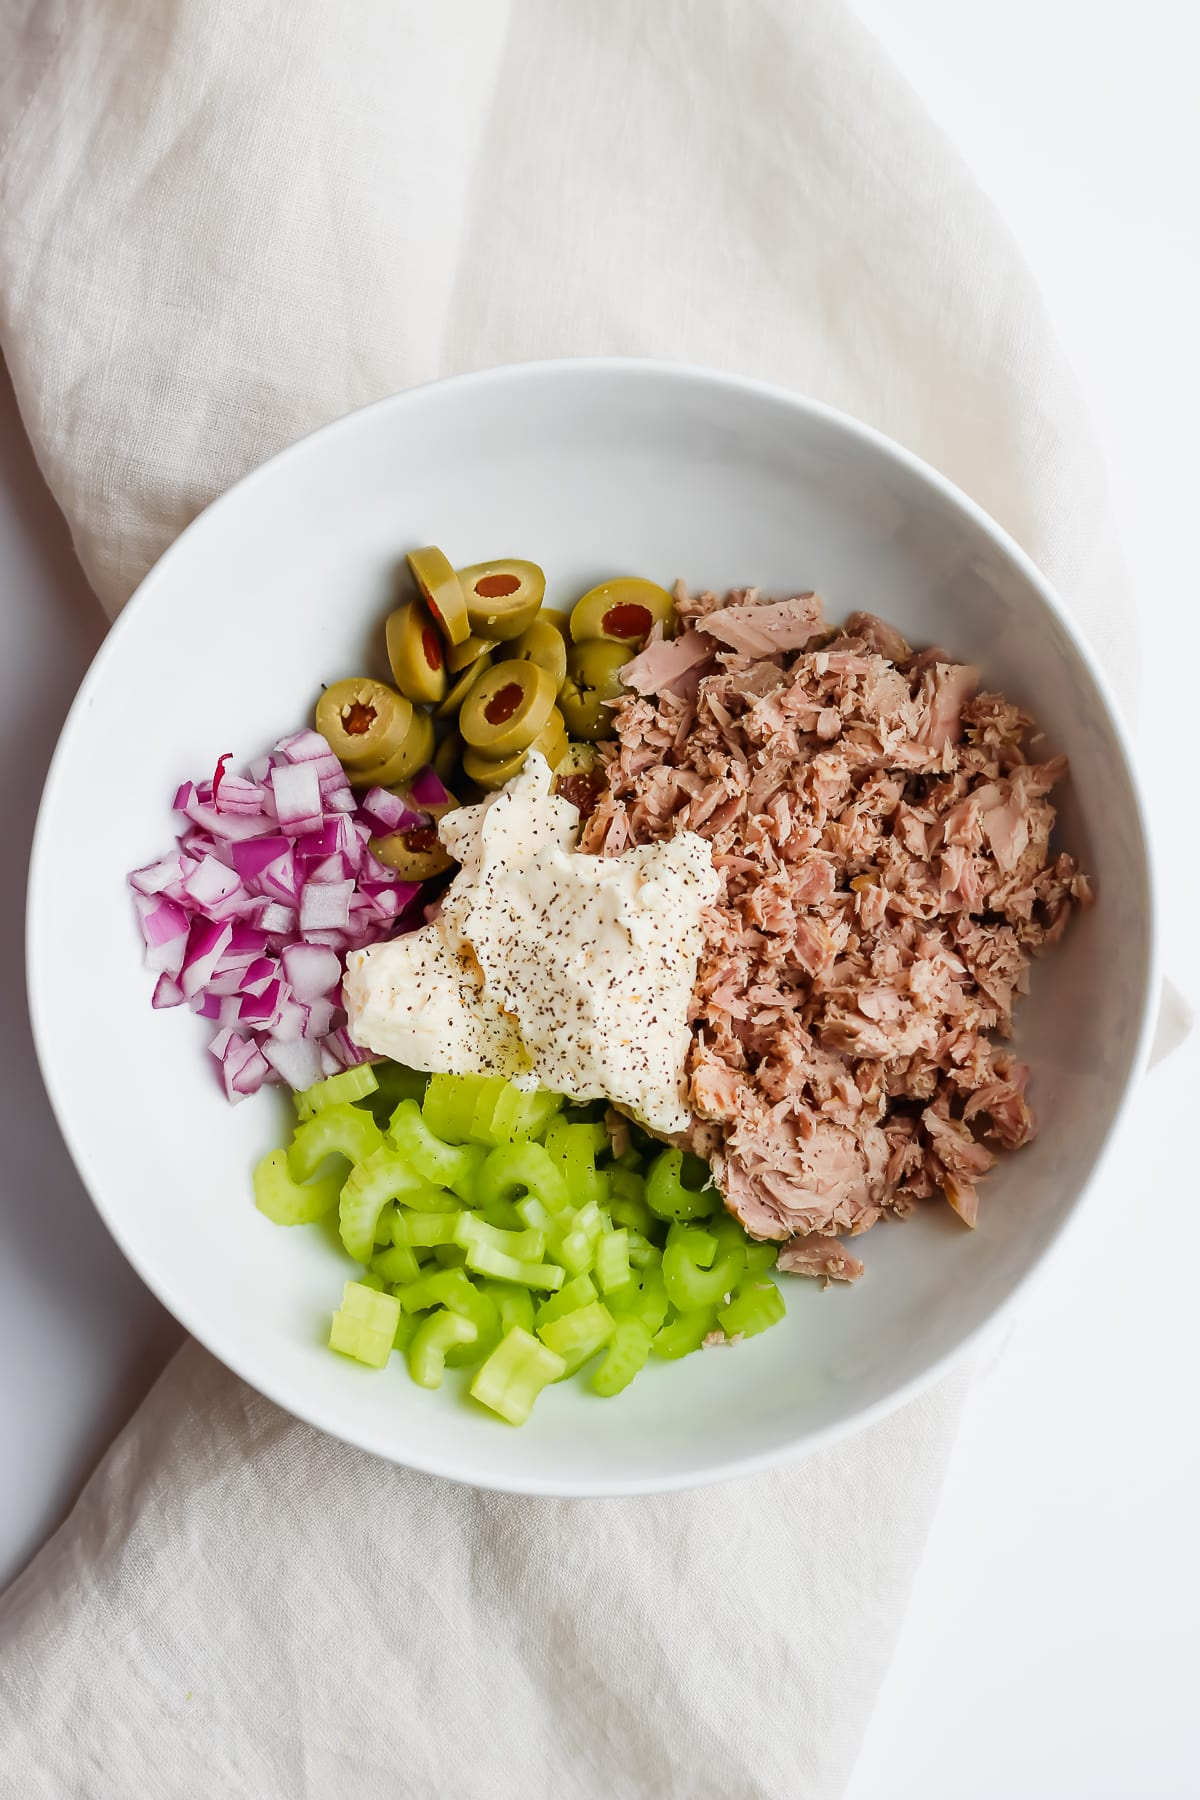 Healthy Tuna Salad The Wooden Skillet